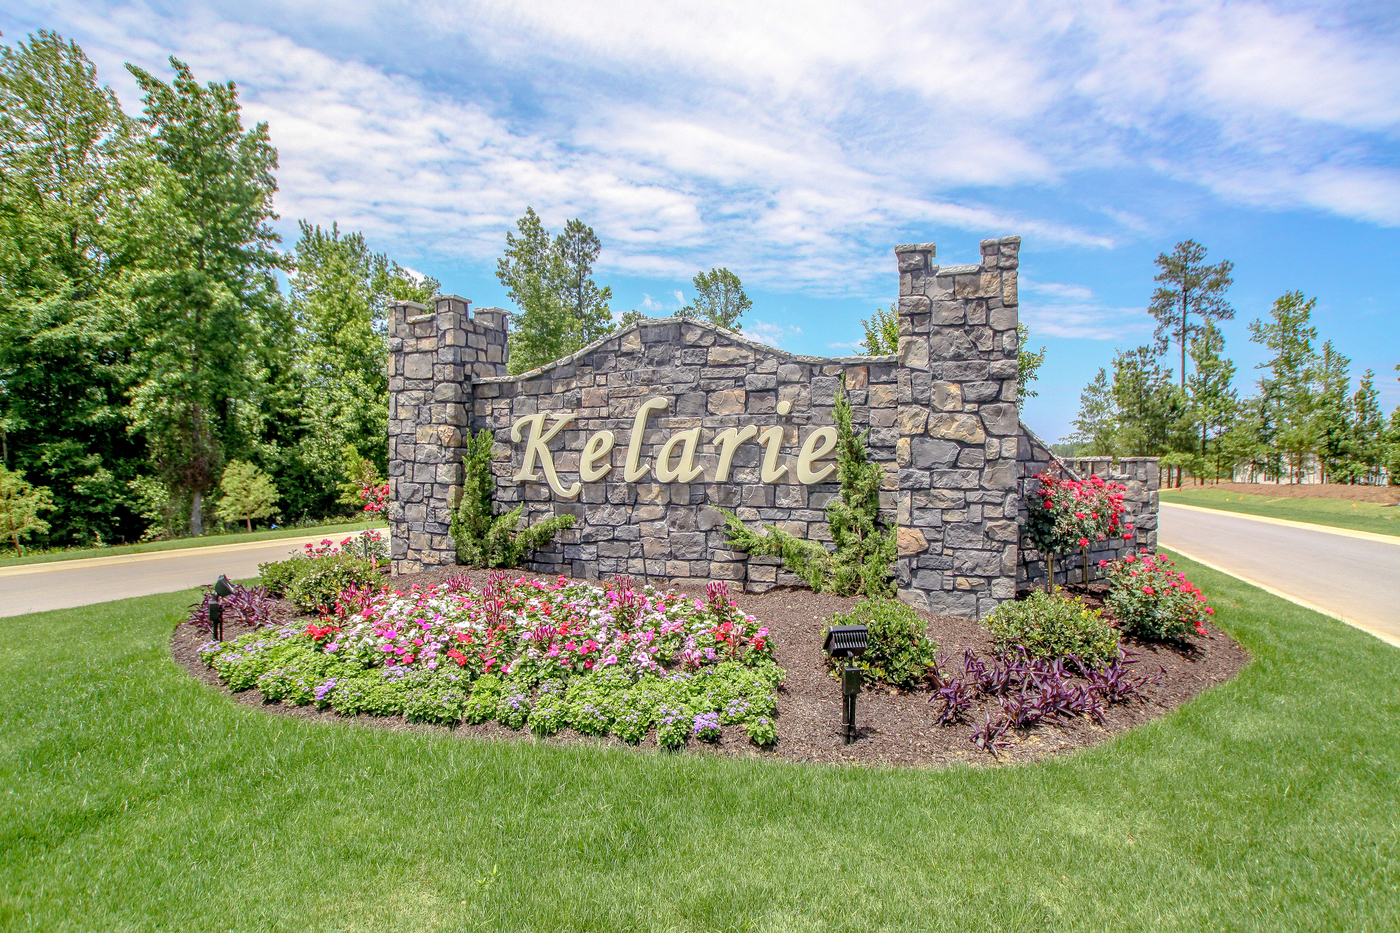 A image of the front entrance of Kelarie stone sign.